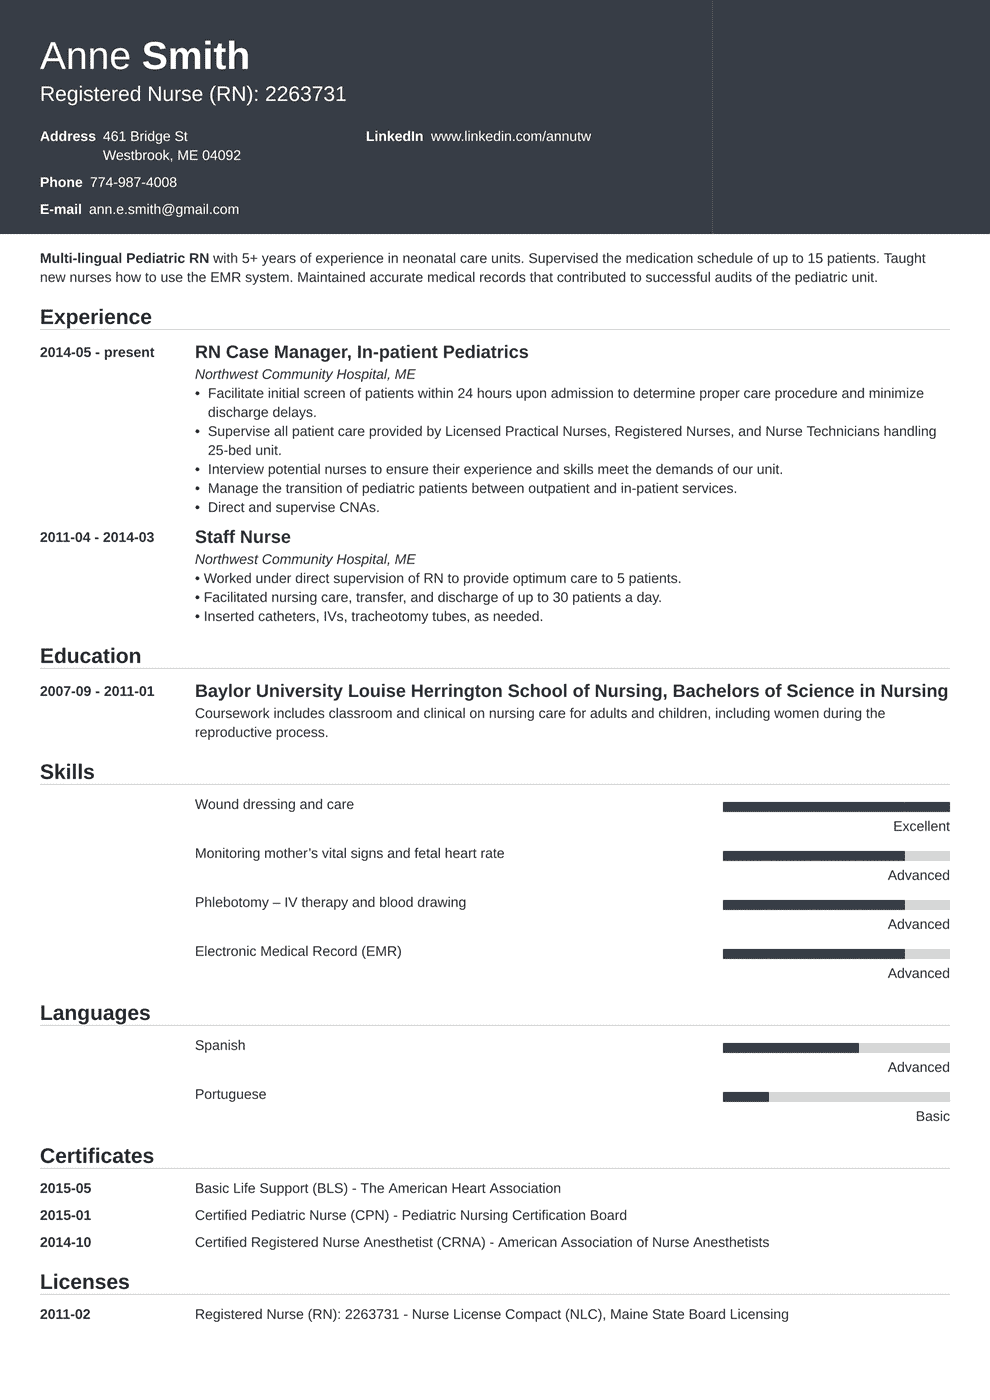 Nursing Resume Template Guide Examples Of Experience